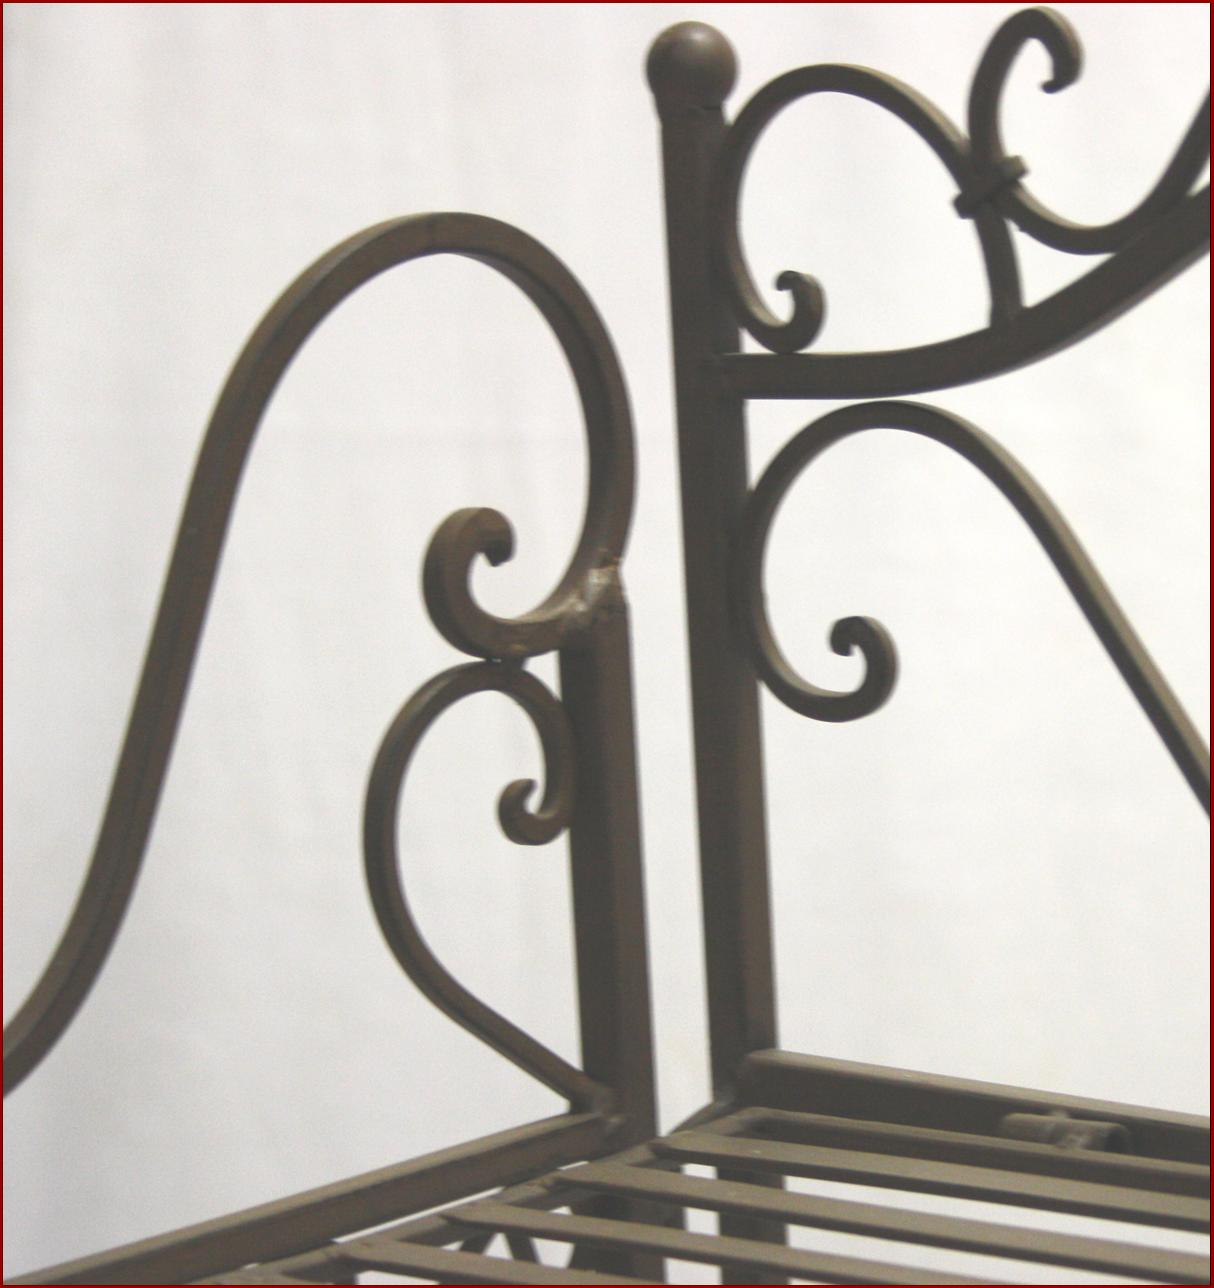 etagere boulangere en fer forge meuble de cuisine salon ebay. Black Bedroom Furniture Sets. Home Design Ideas